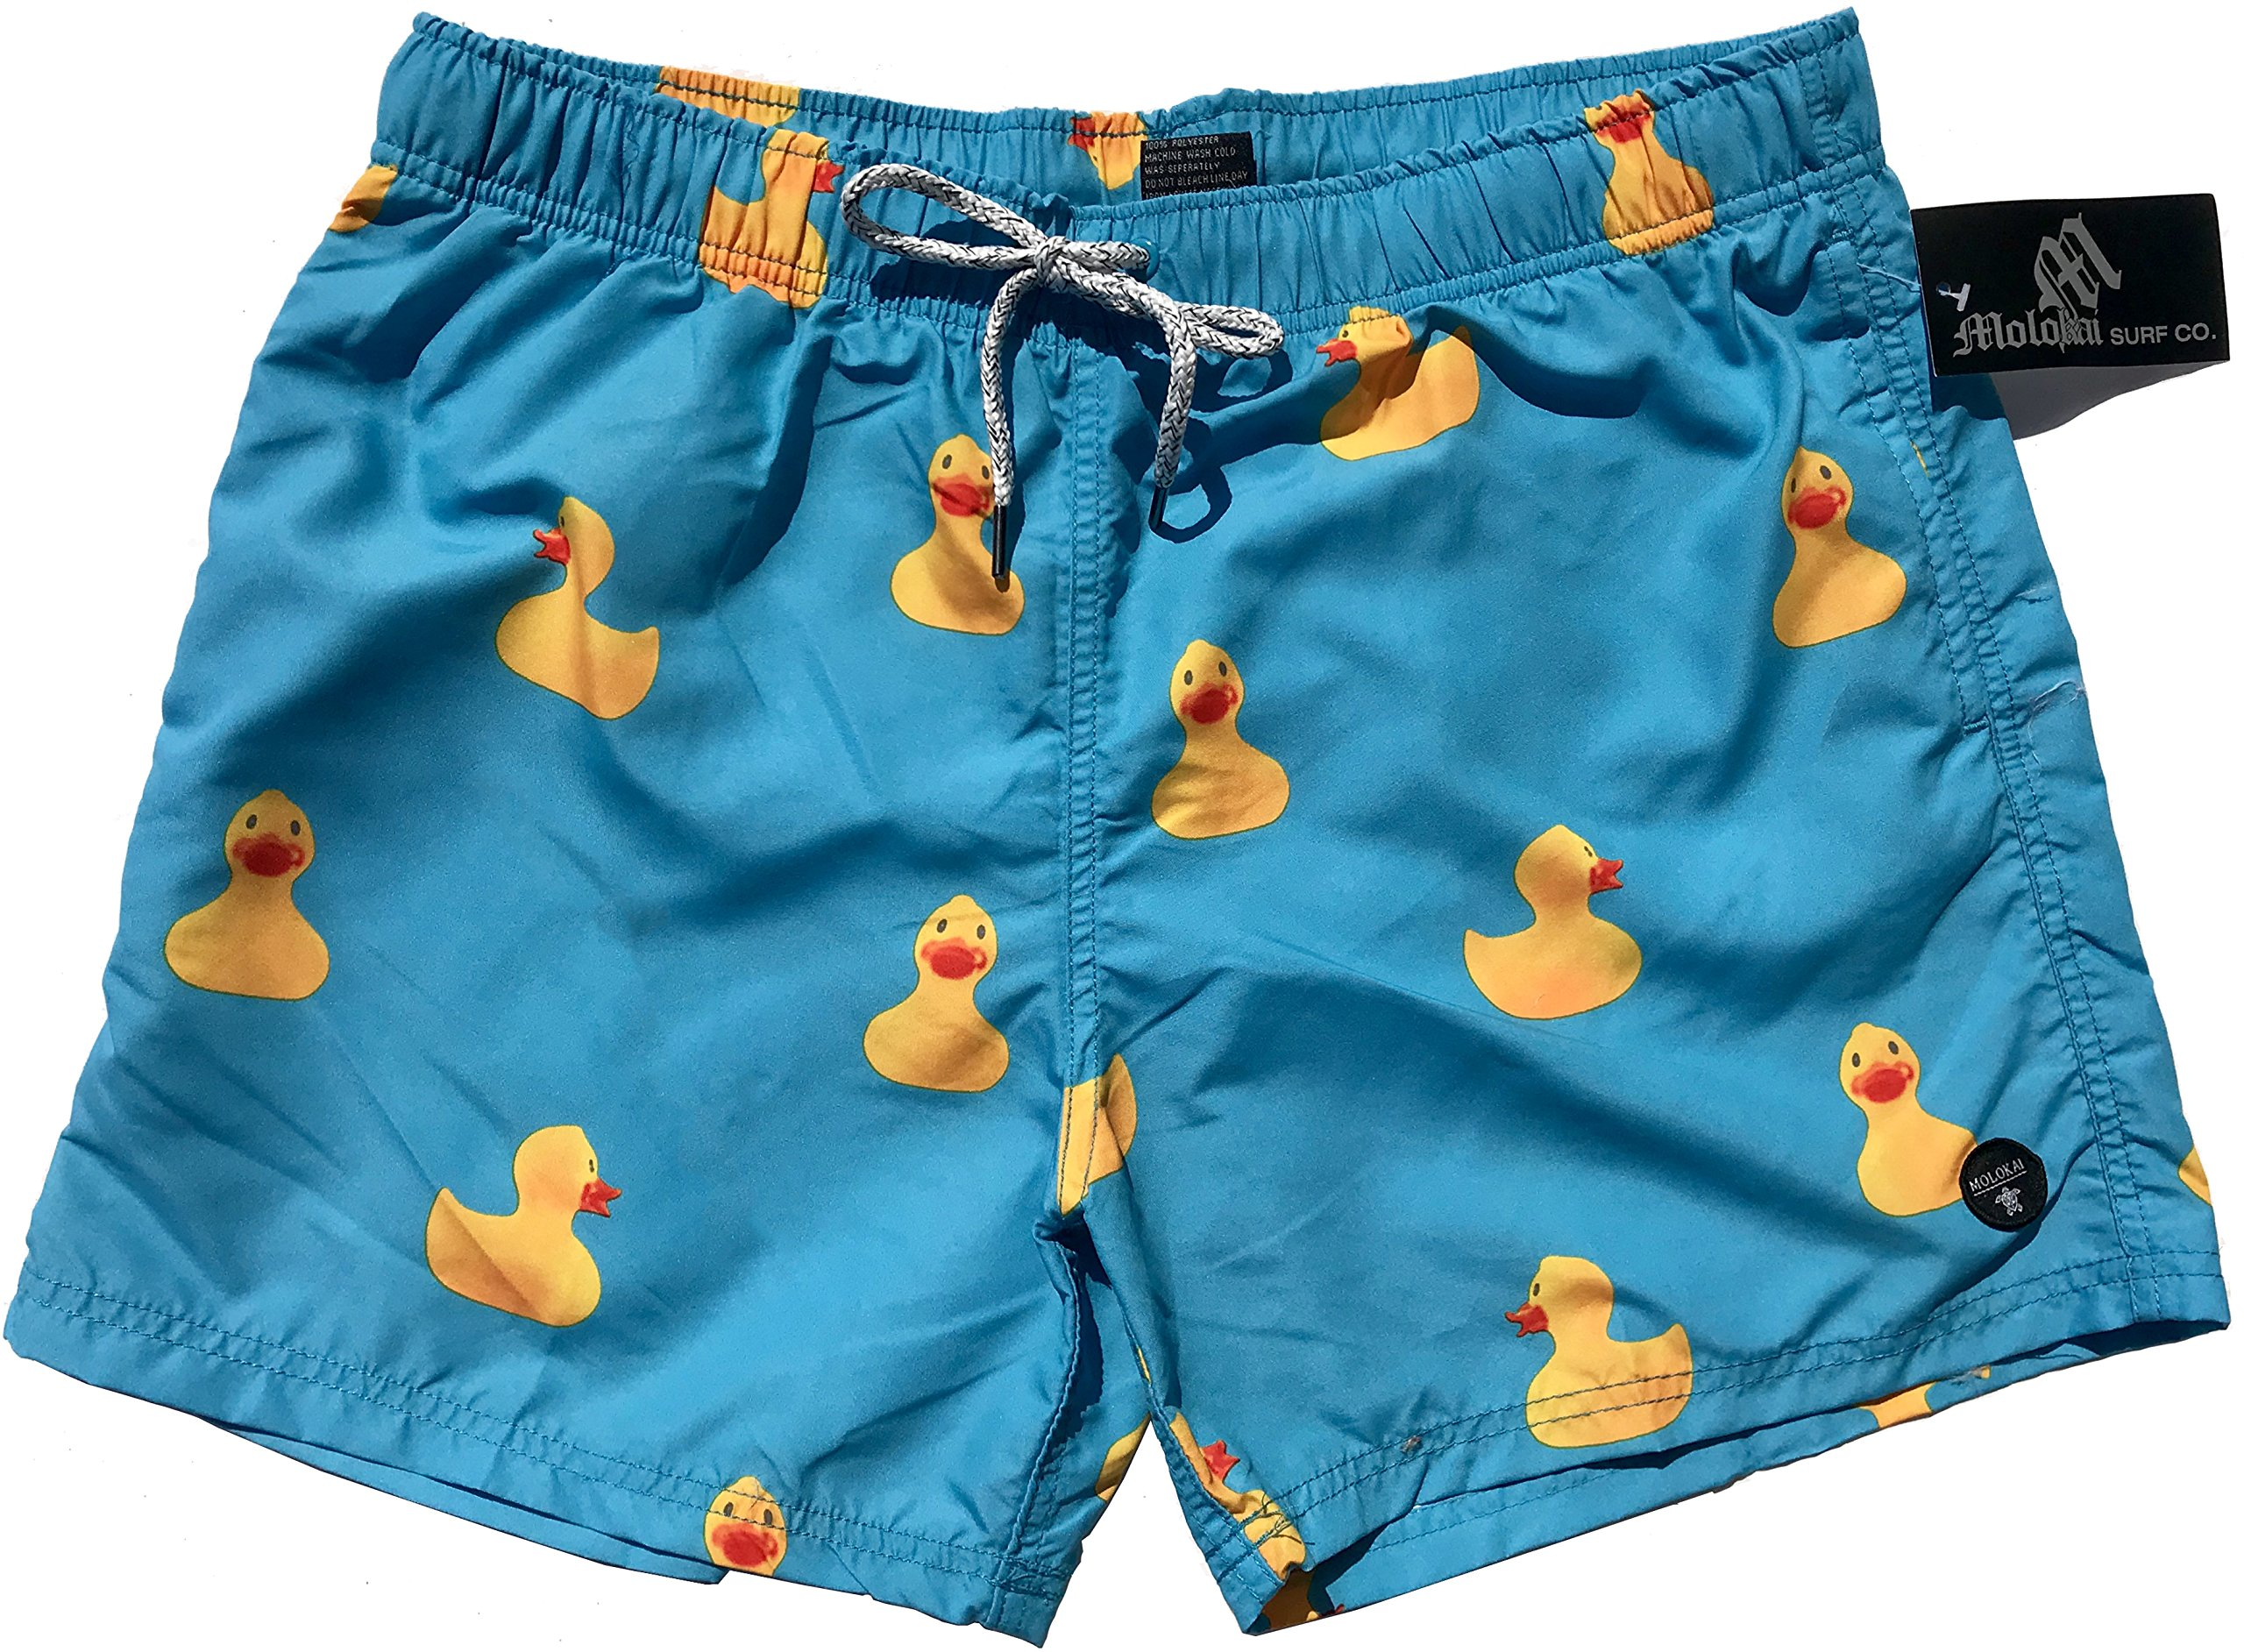 Official Molokai Swim Trunks and Shorts (Rubber Ducks, Large)